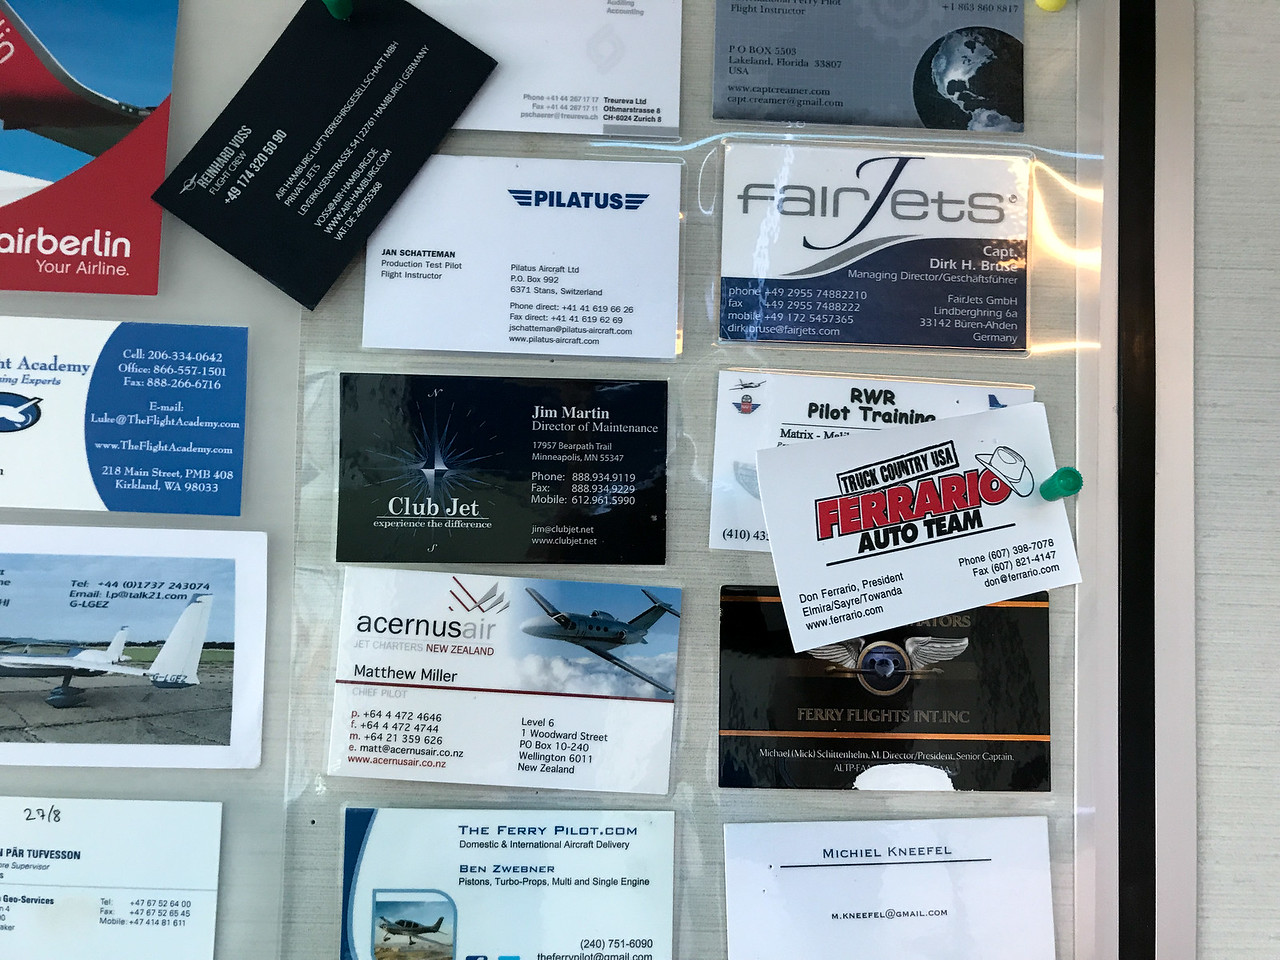 Pilots post business cards.  RWR Pilot Training is our buddy.